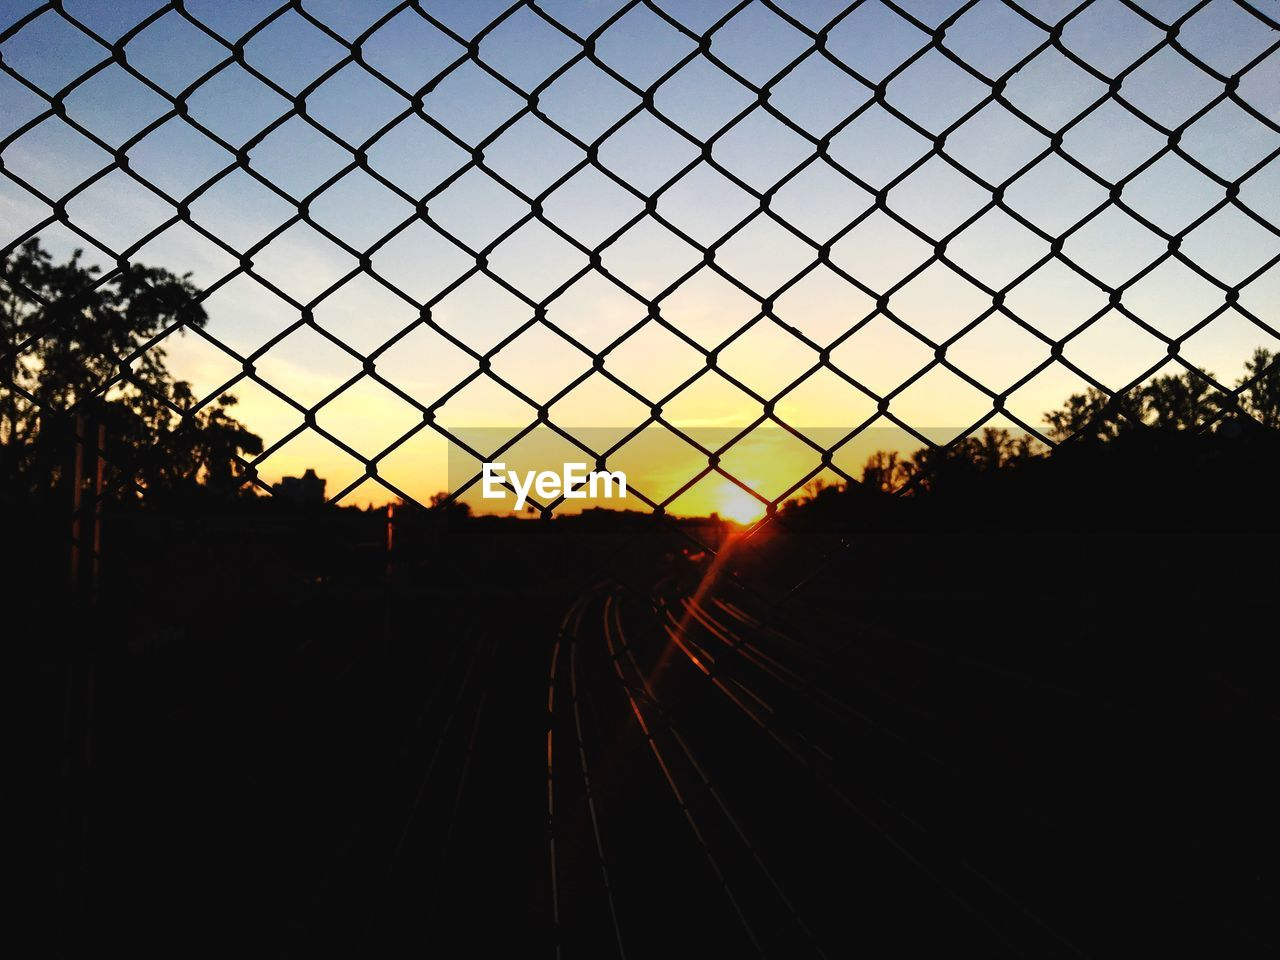 sky, sunset, silhouette, rail transportation, nature, no people, tree, track, railroad track, metal, clear sky, plant, transportation, chainlink fence, fence, outdoors, train, sunlight, security, beauty in nature